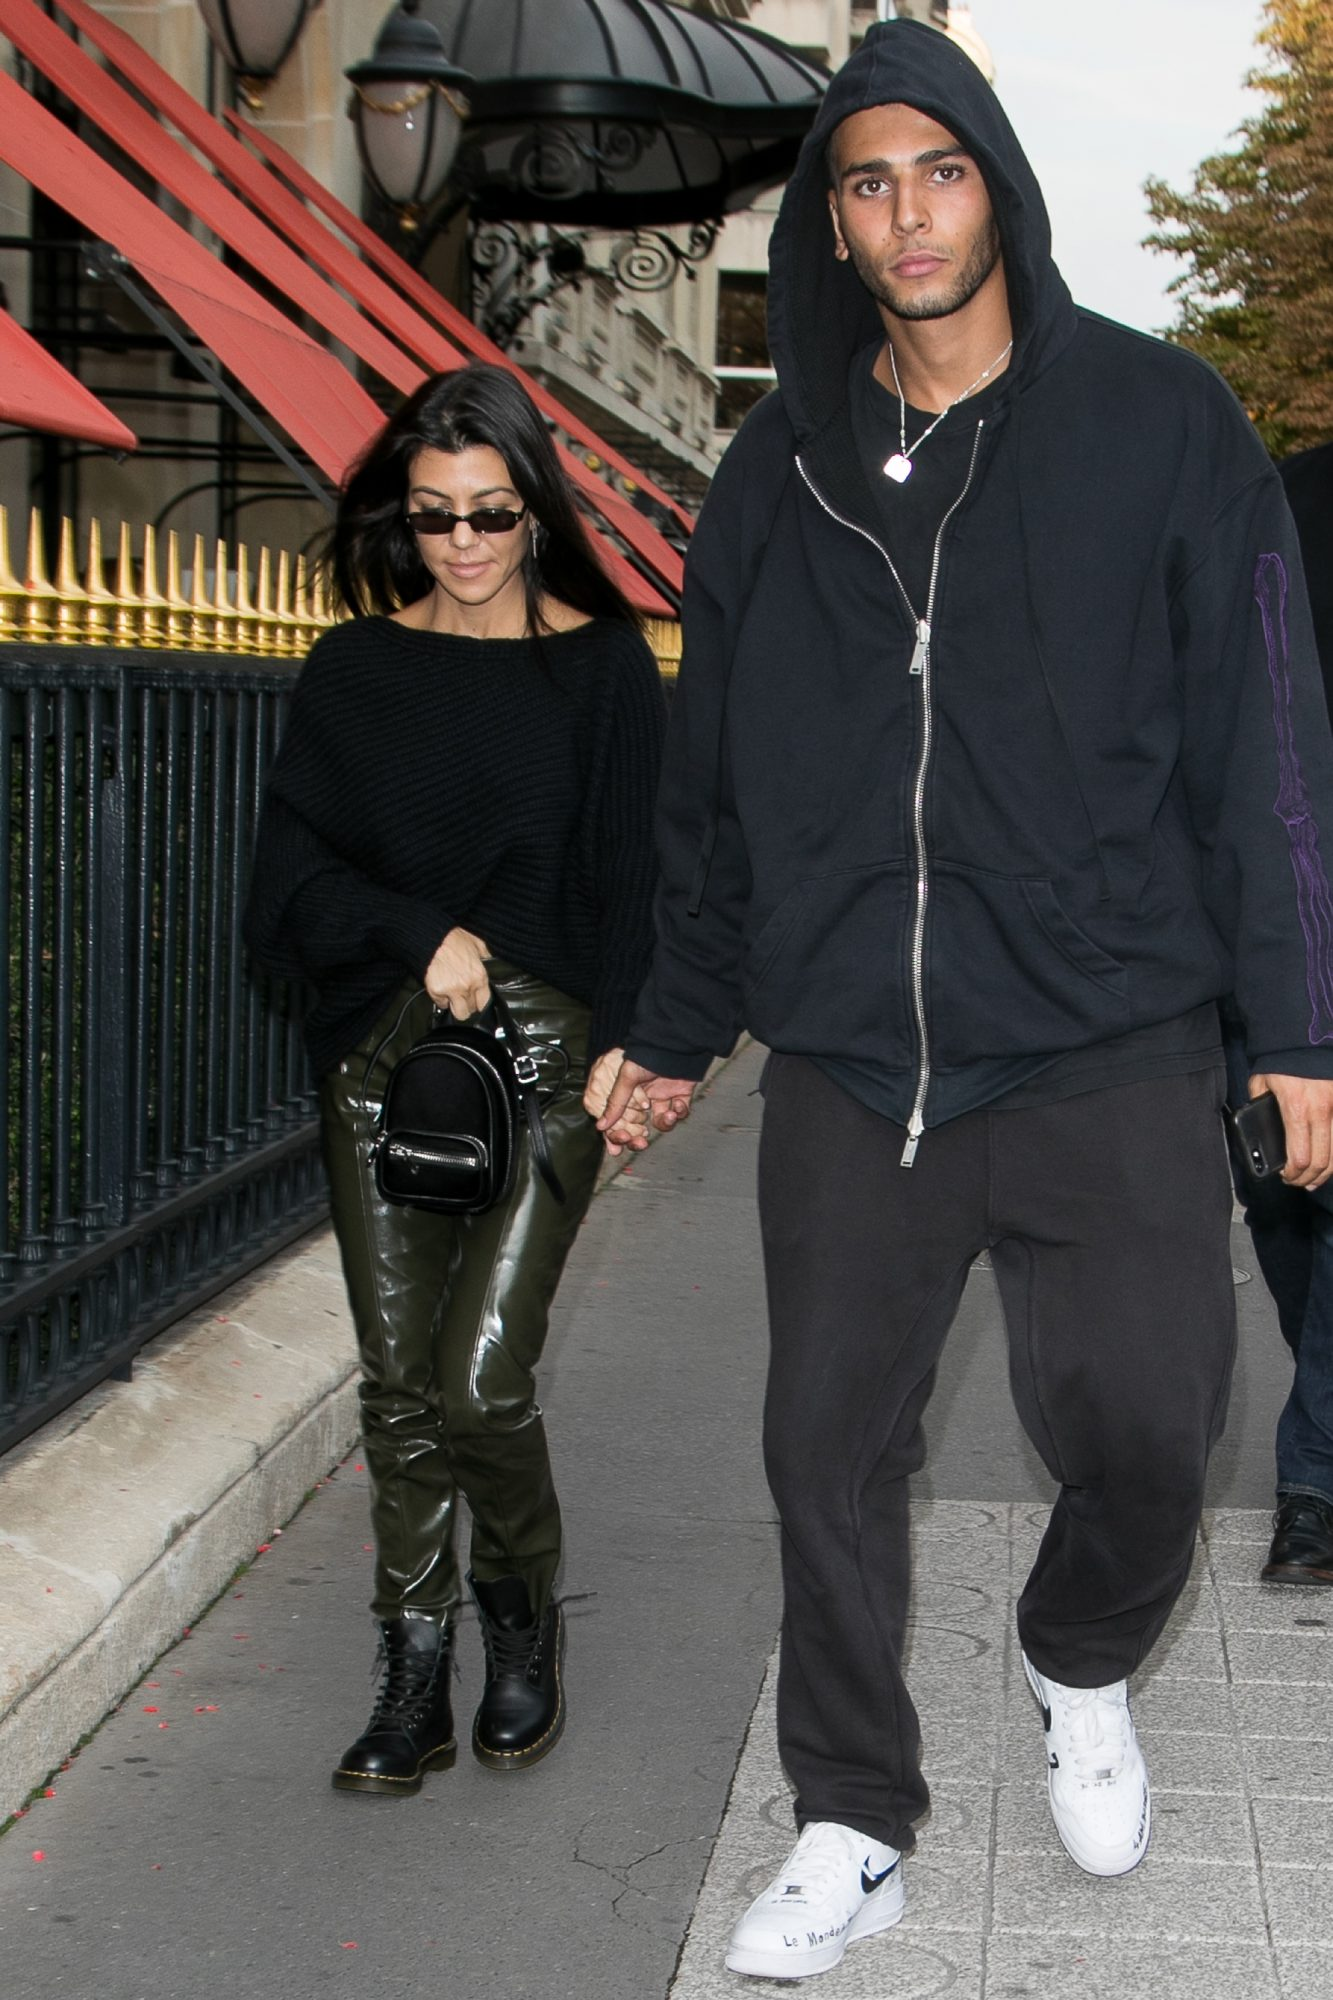 Kourtney Kardashian Takes Paris Fashion Week With